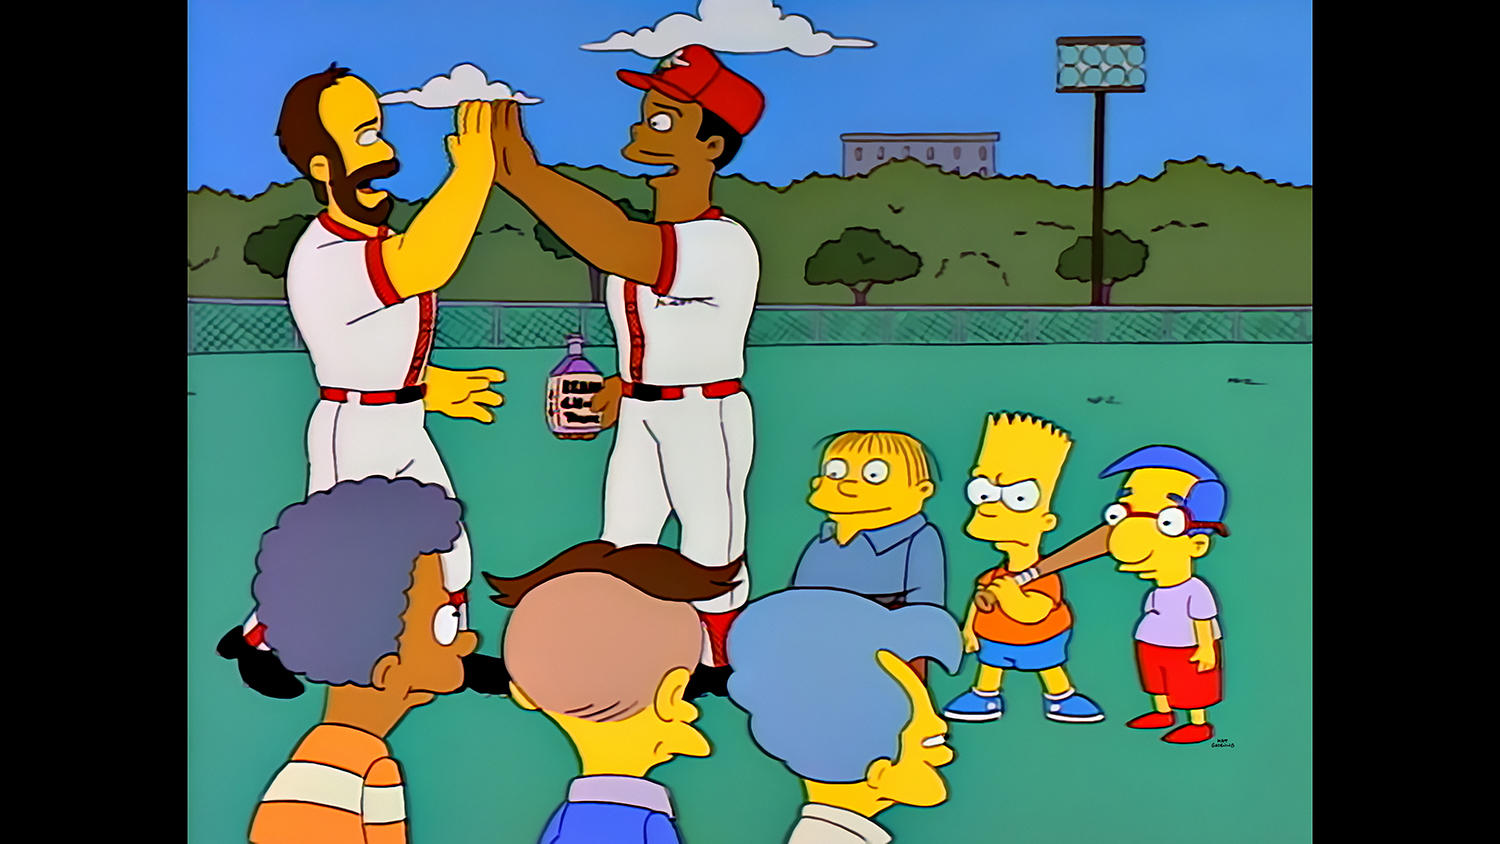 """Hall of Famers Wade Boggs (left) and Ken Griffey Jr. were among the baseball players featured in THE SIMPSONS """"Homer at the Bat"""" episode. Boggs will participate in THE SIMPSONS roundtable discussion at this year's Hall of Fame Classic. (Photo Courtesy of FOX)"""